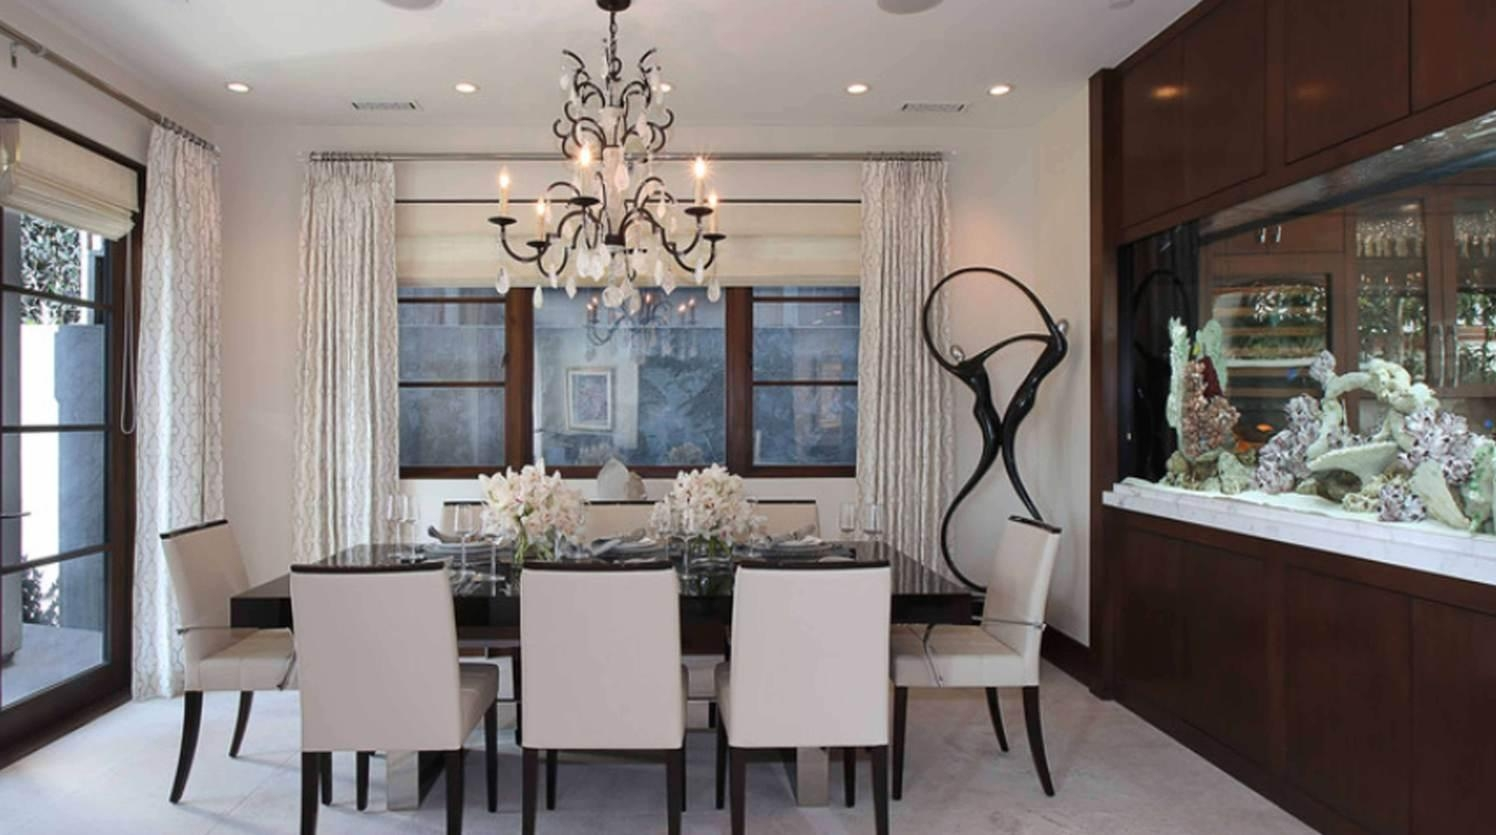 Dining Room : Wall Art For Dining Room Stunning Metal Wall Art On With Regard To Oversized Metal Wall Art (View 12 of 23)